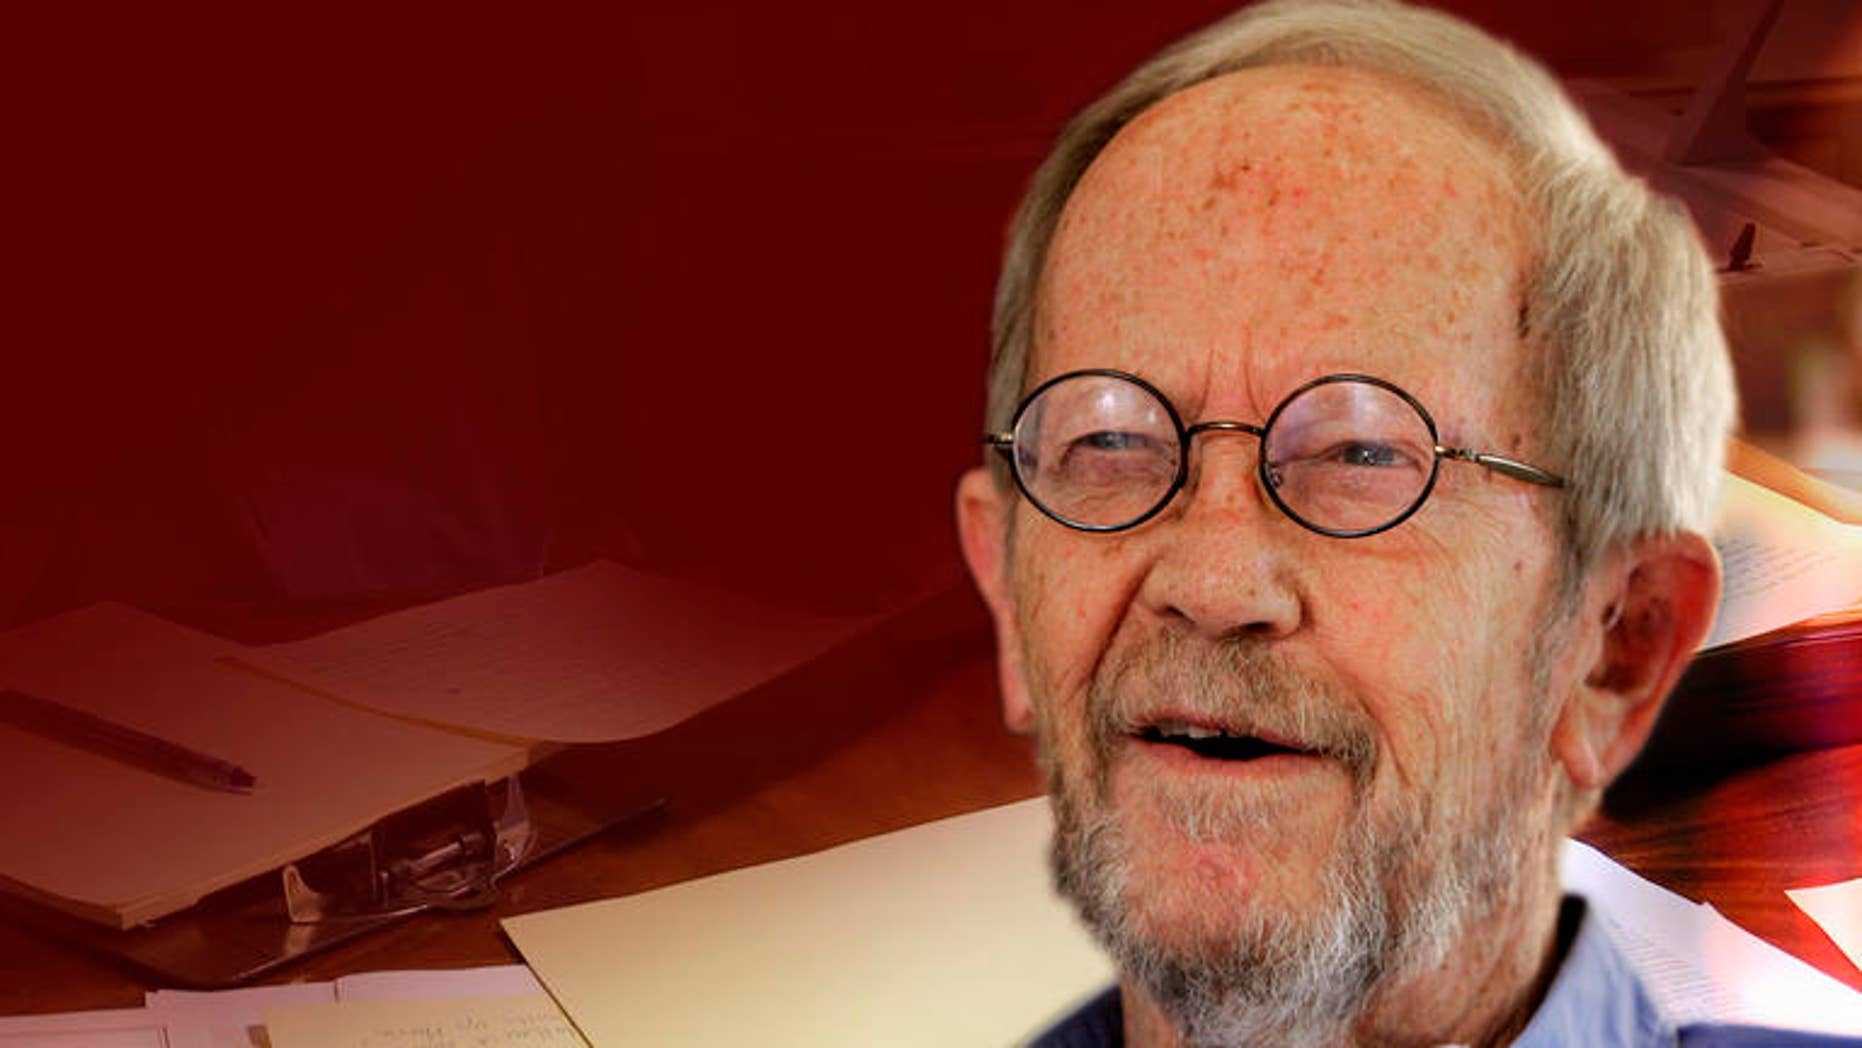 In this Sept. 28, 2010 photo, author Elmore Leonard is interviewed at his home in Bloomfield Township, Mich. (AP Photo/Carlos Osorio)